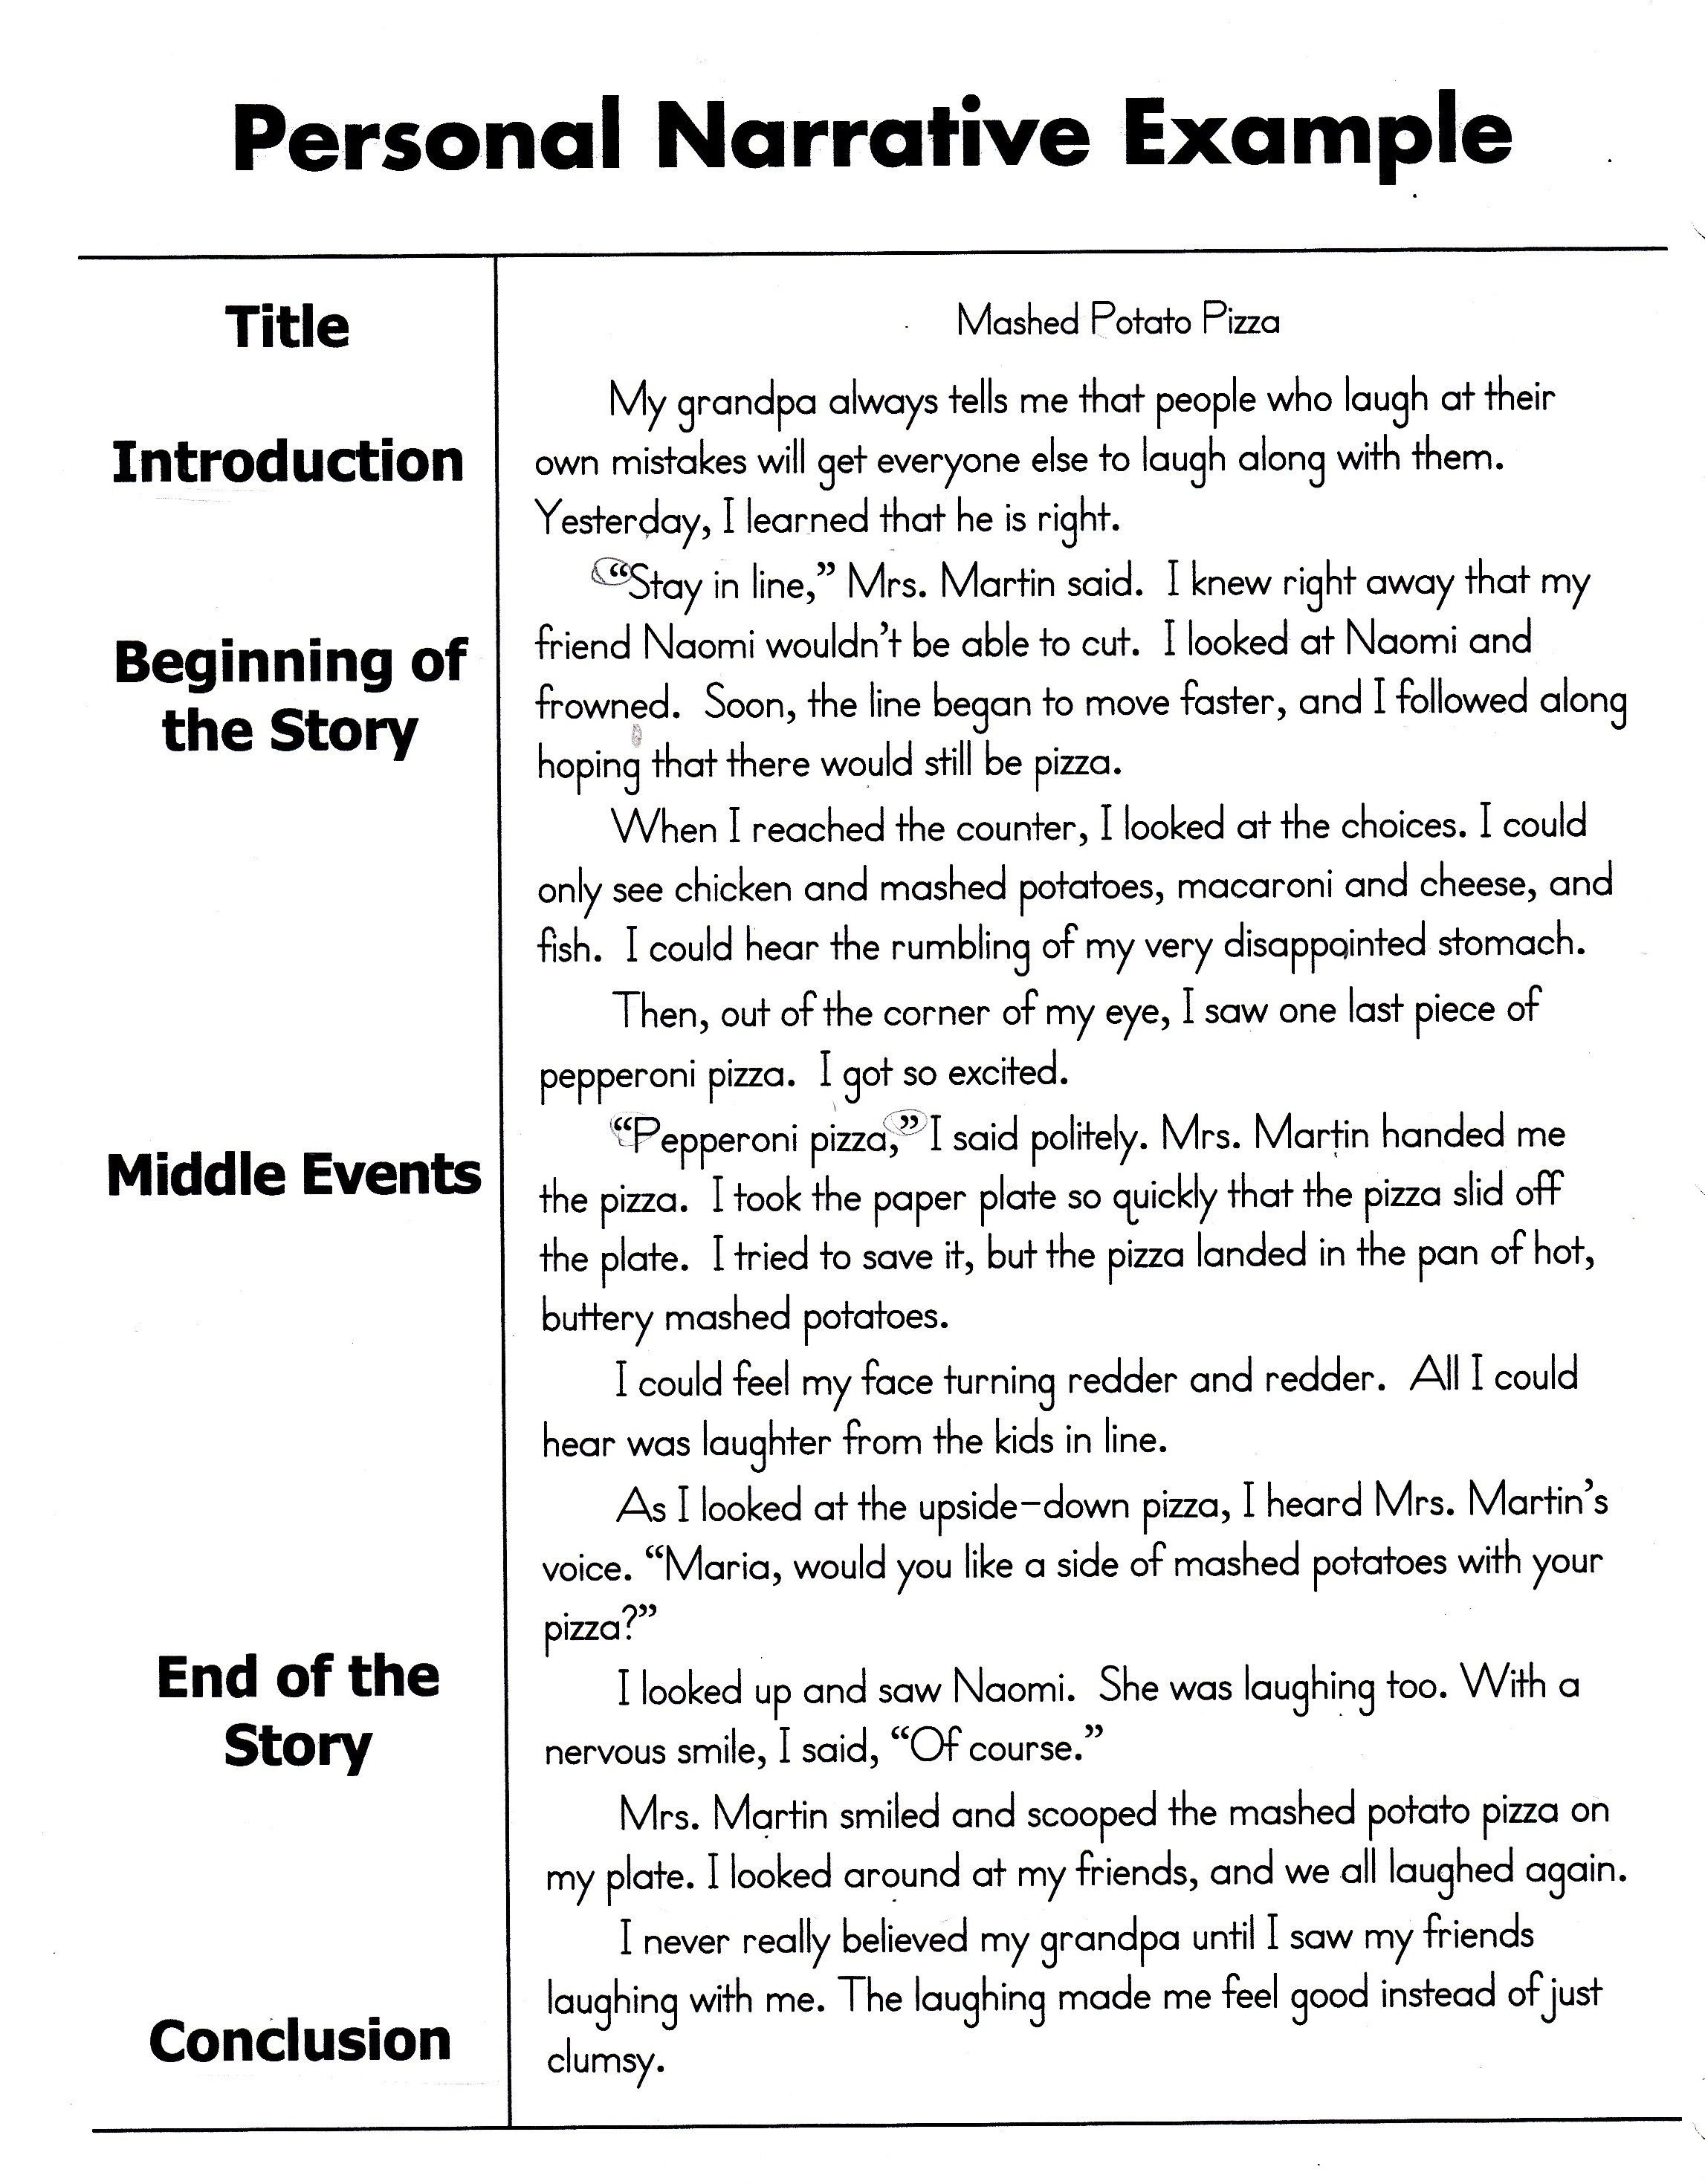 How To Write A Personal Narrative Essay For 4Th 5Th Grade Oc inside Personal Narrative Examples 5Th Grade 21351